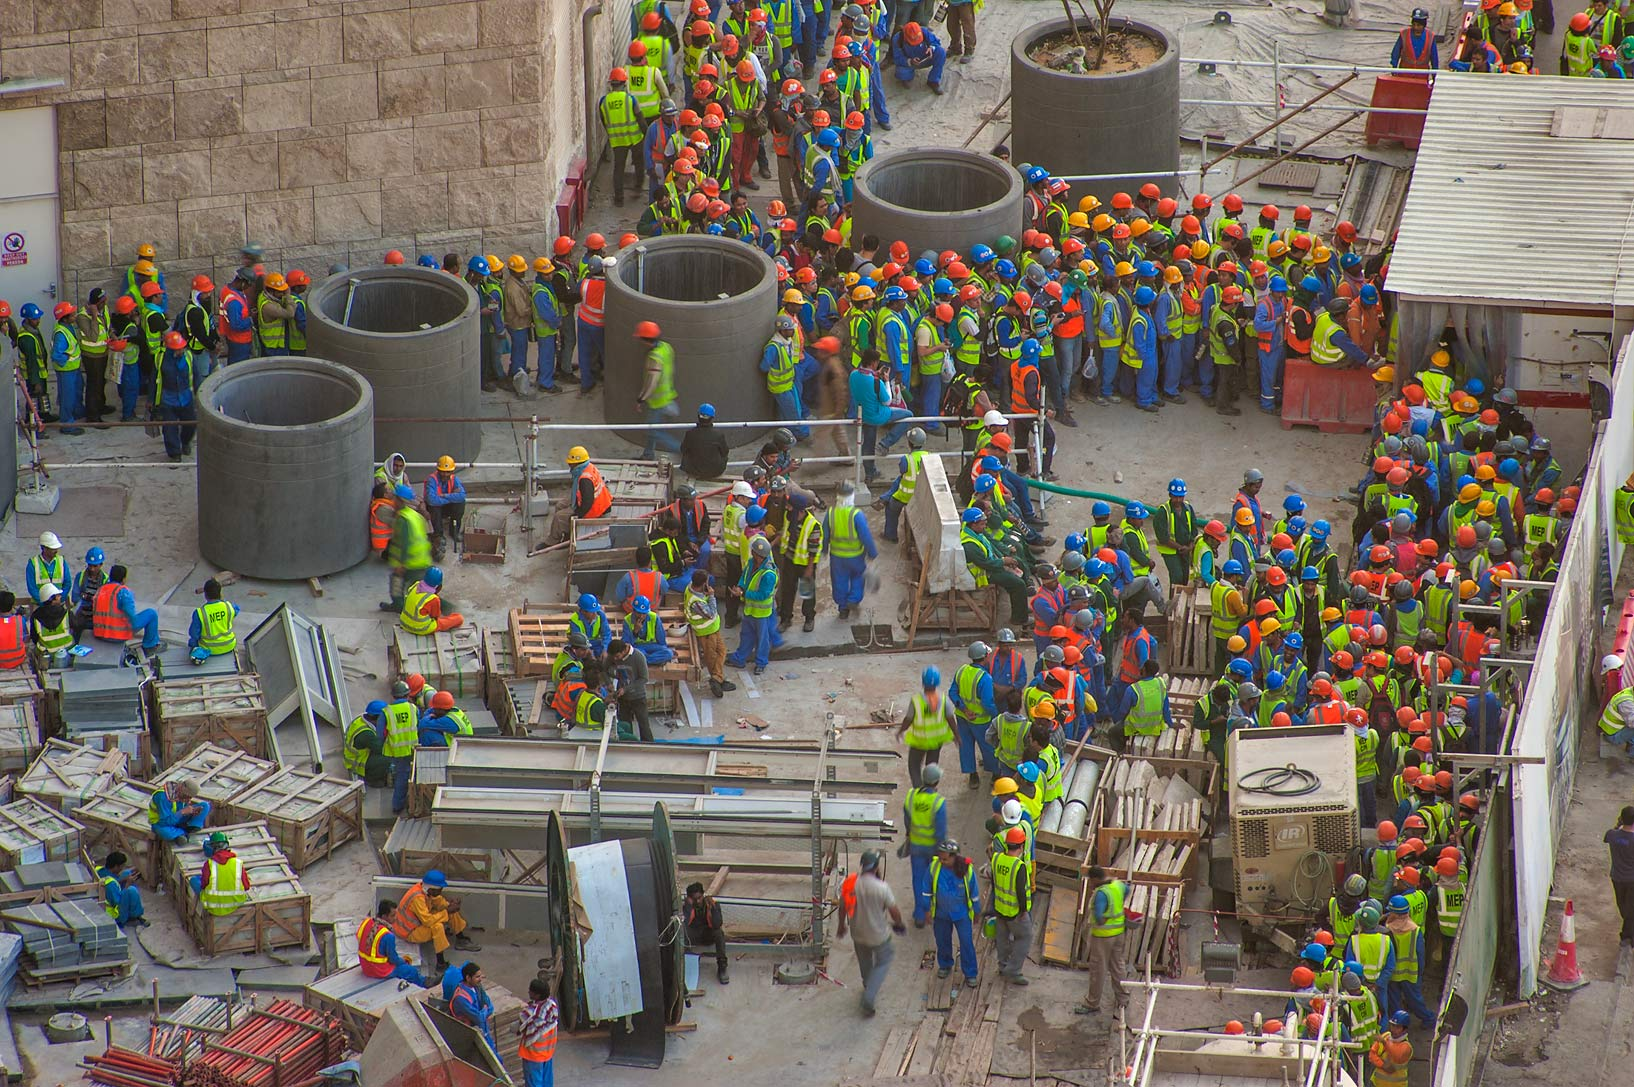 Workers crowding on construction of Qatar...1-2244 of Ezdan Hotel. Doha, Qatar